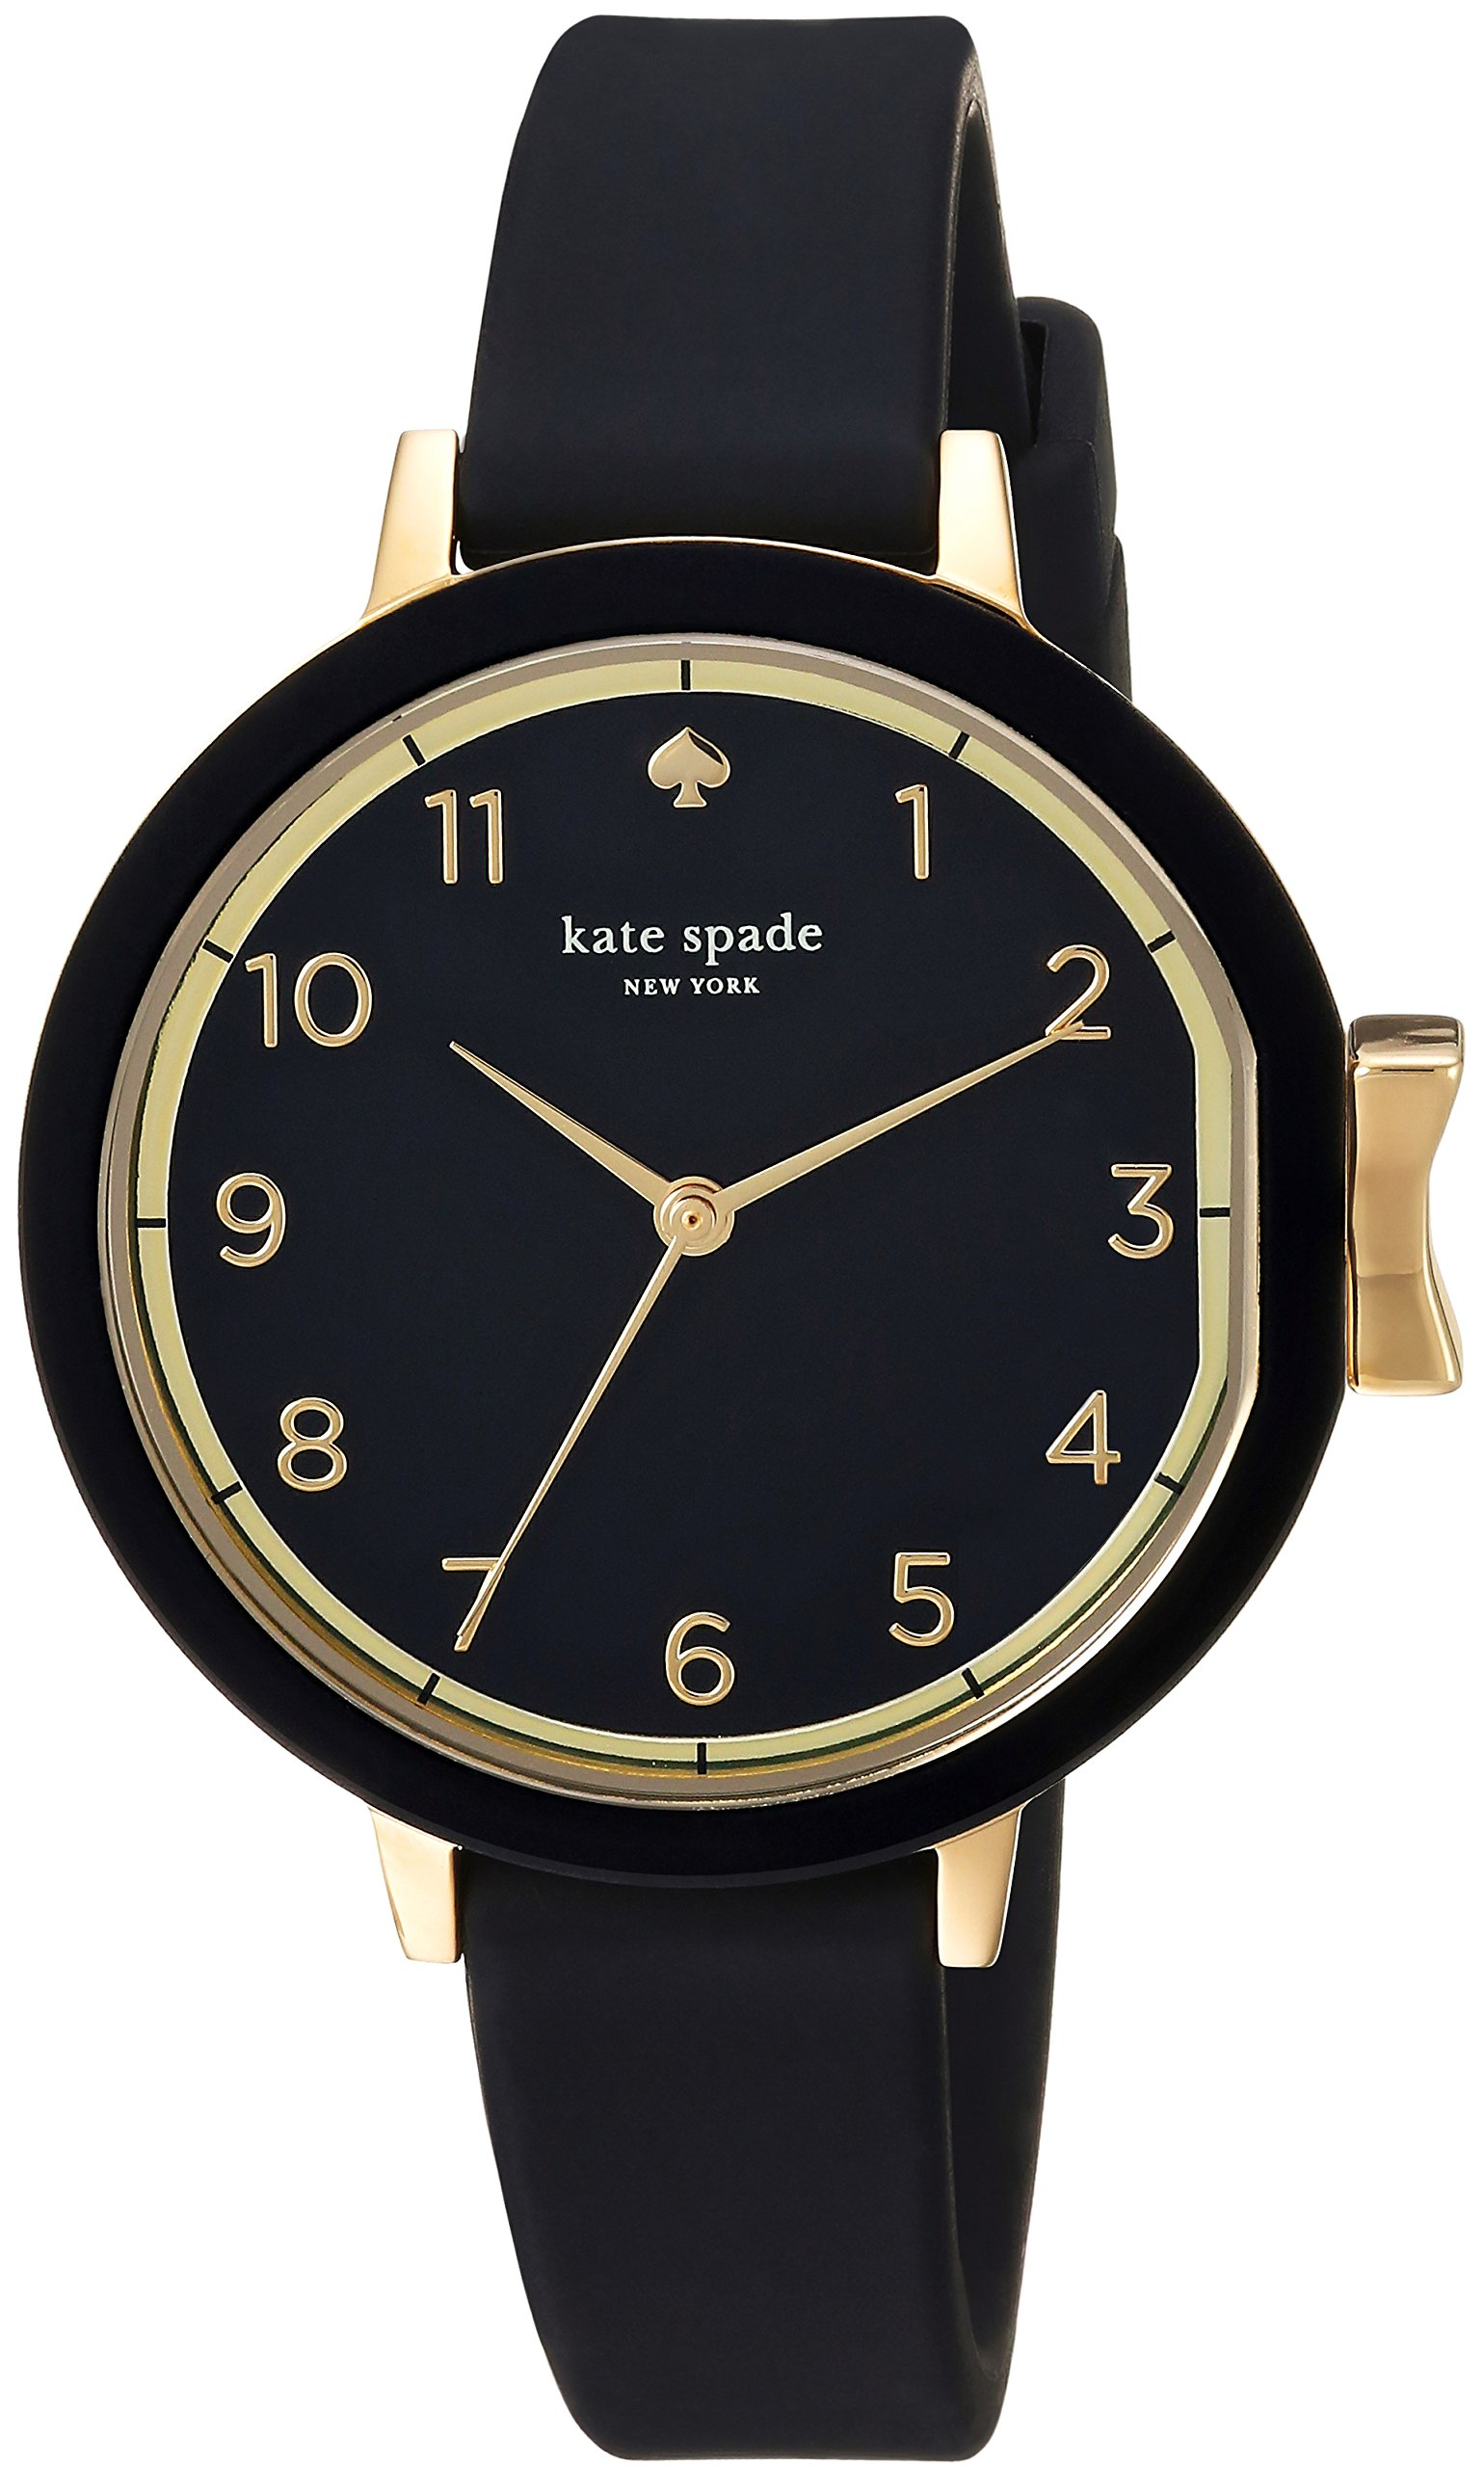 kate spade new york Women's Park Row Silicone Stainless Steel Japanese-Quartz Watch Strap, Black, 12 (Model: KSW1352) by Kate Spade New York